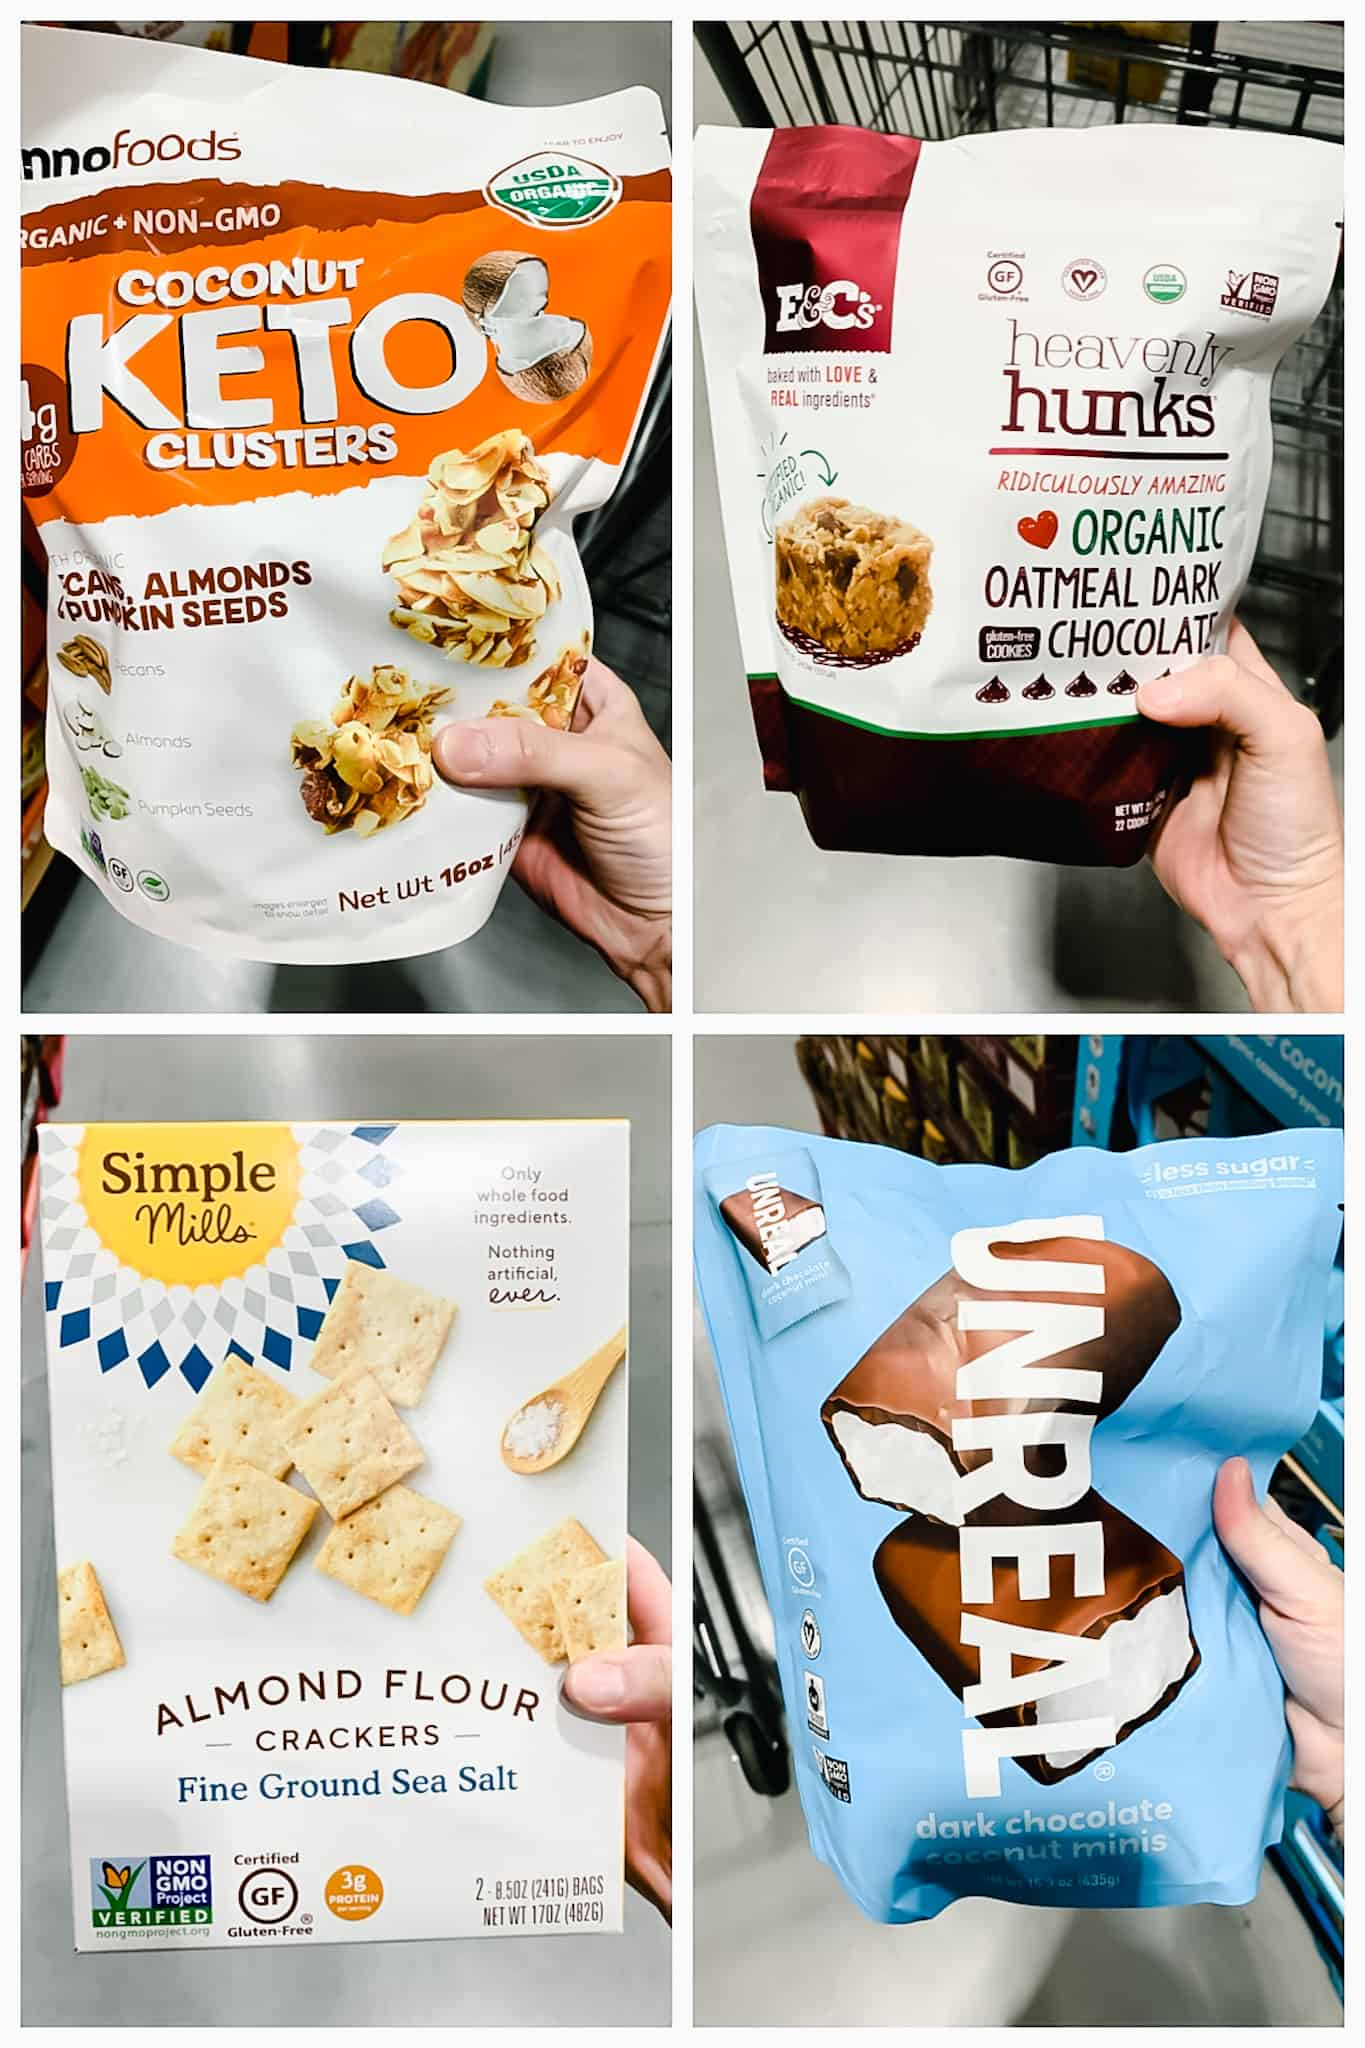 Keto clusters, heavenly hunks, simple mills almond crackers, and unreal bars held by hand inside Costco.